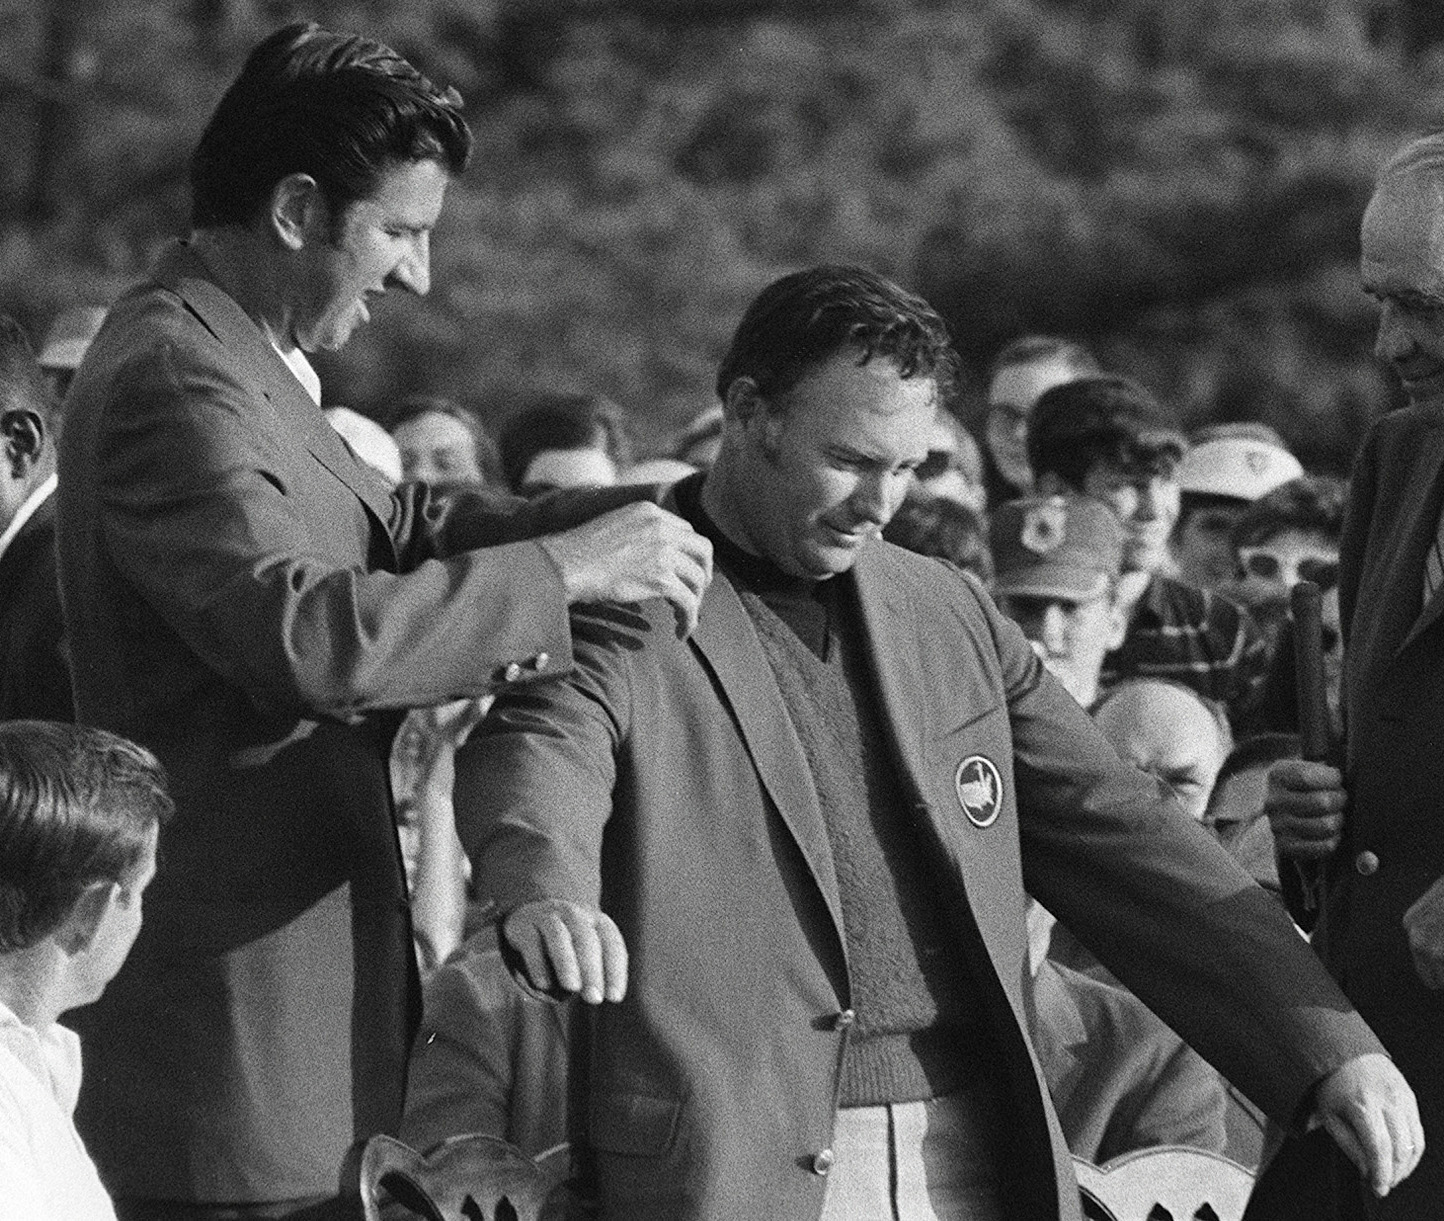 Billy Casper's 1970 Masters win